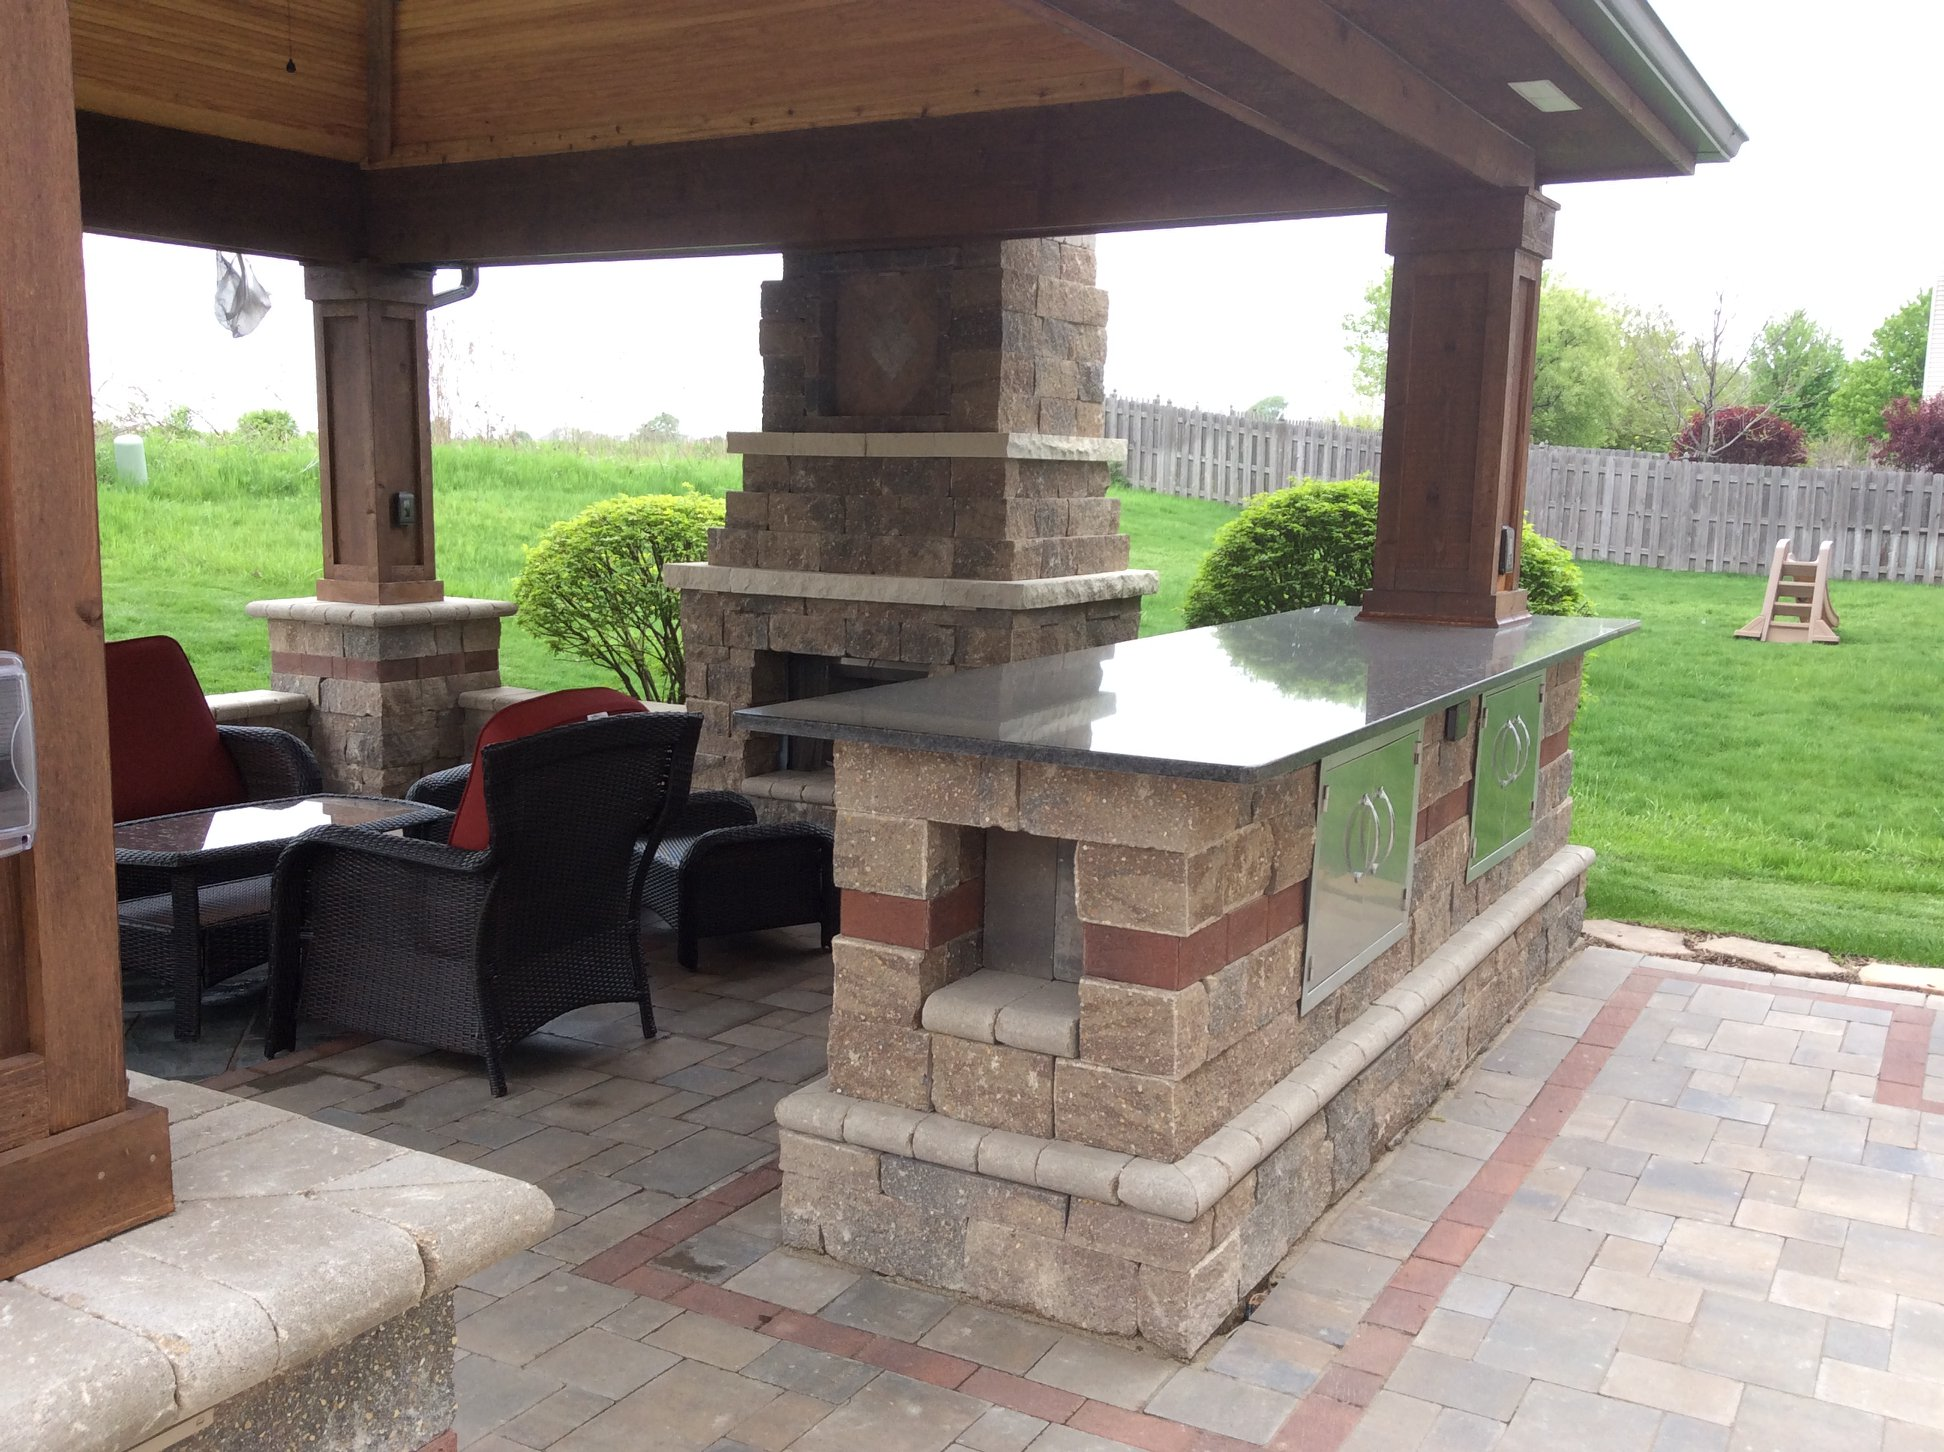 Brick paving patio that includes outdoor kitchen and outdoor fireplace in Plainfield, IL